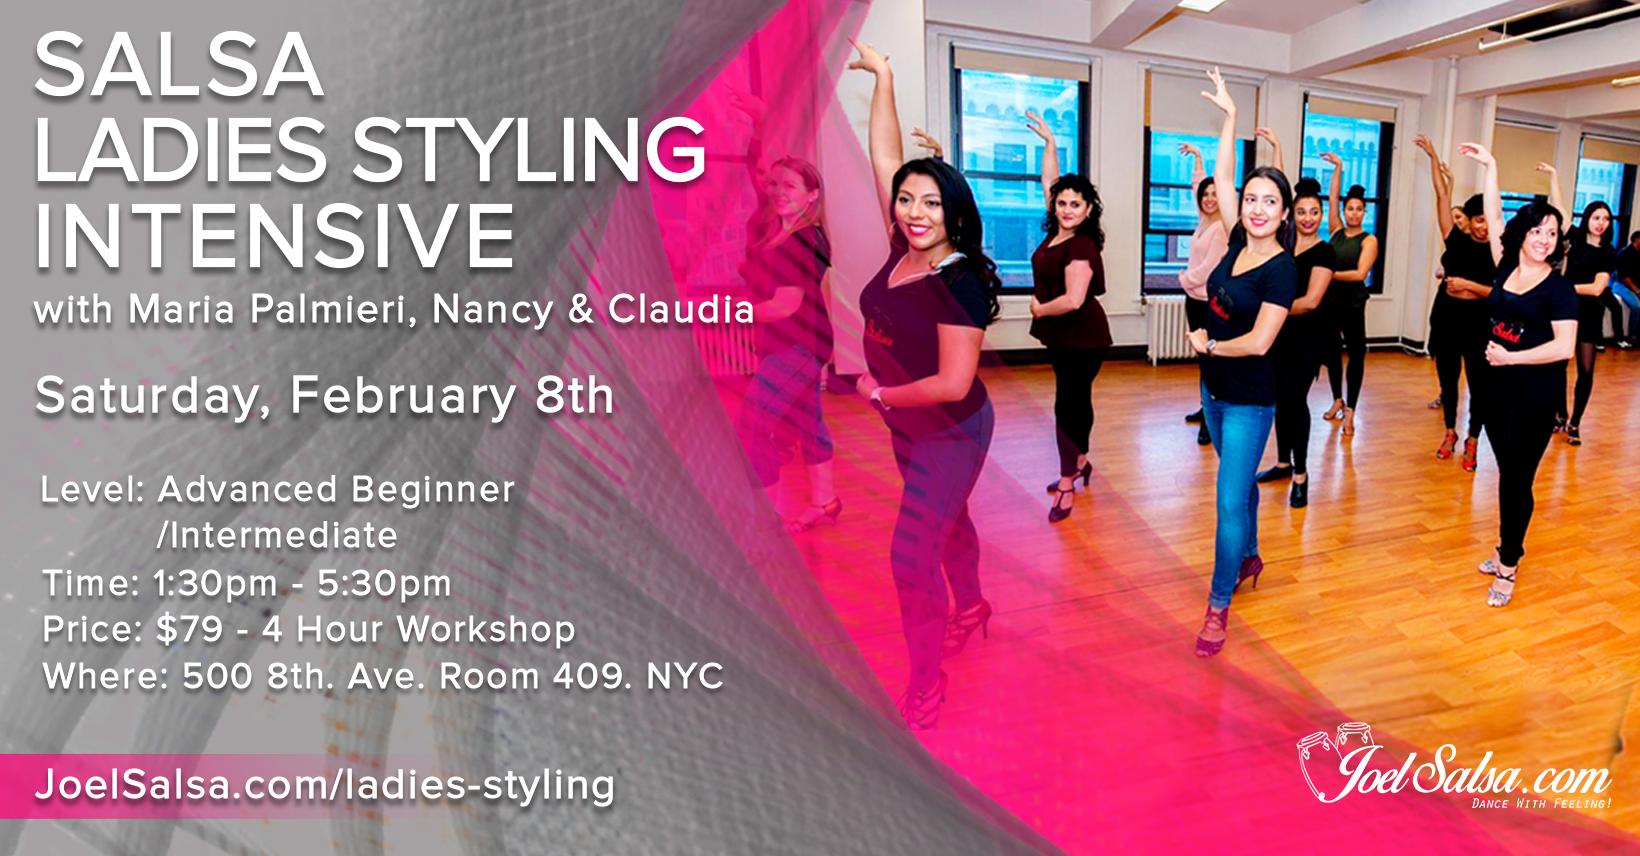 Salsa Ladies Styling Intensive workshop on February 8th 2020